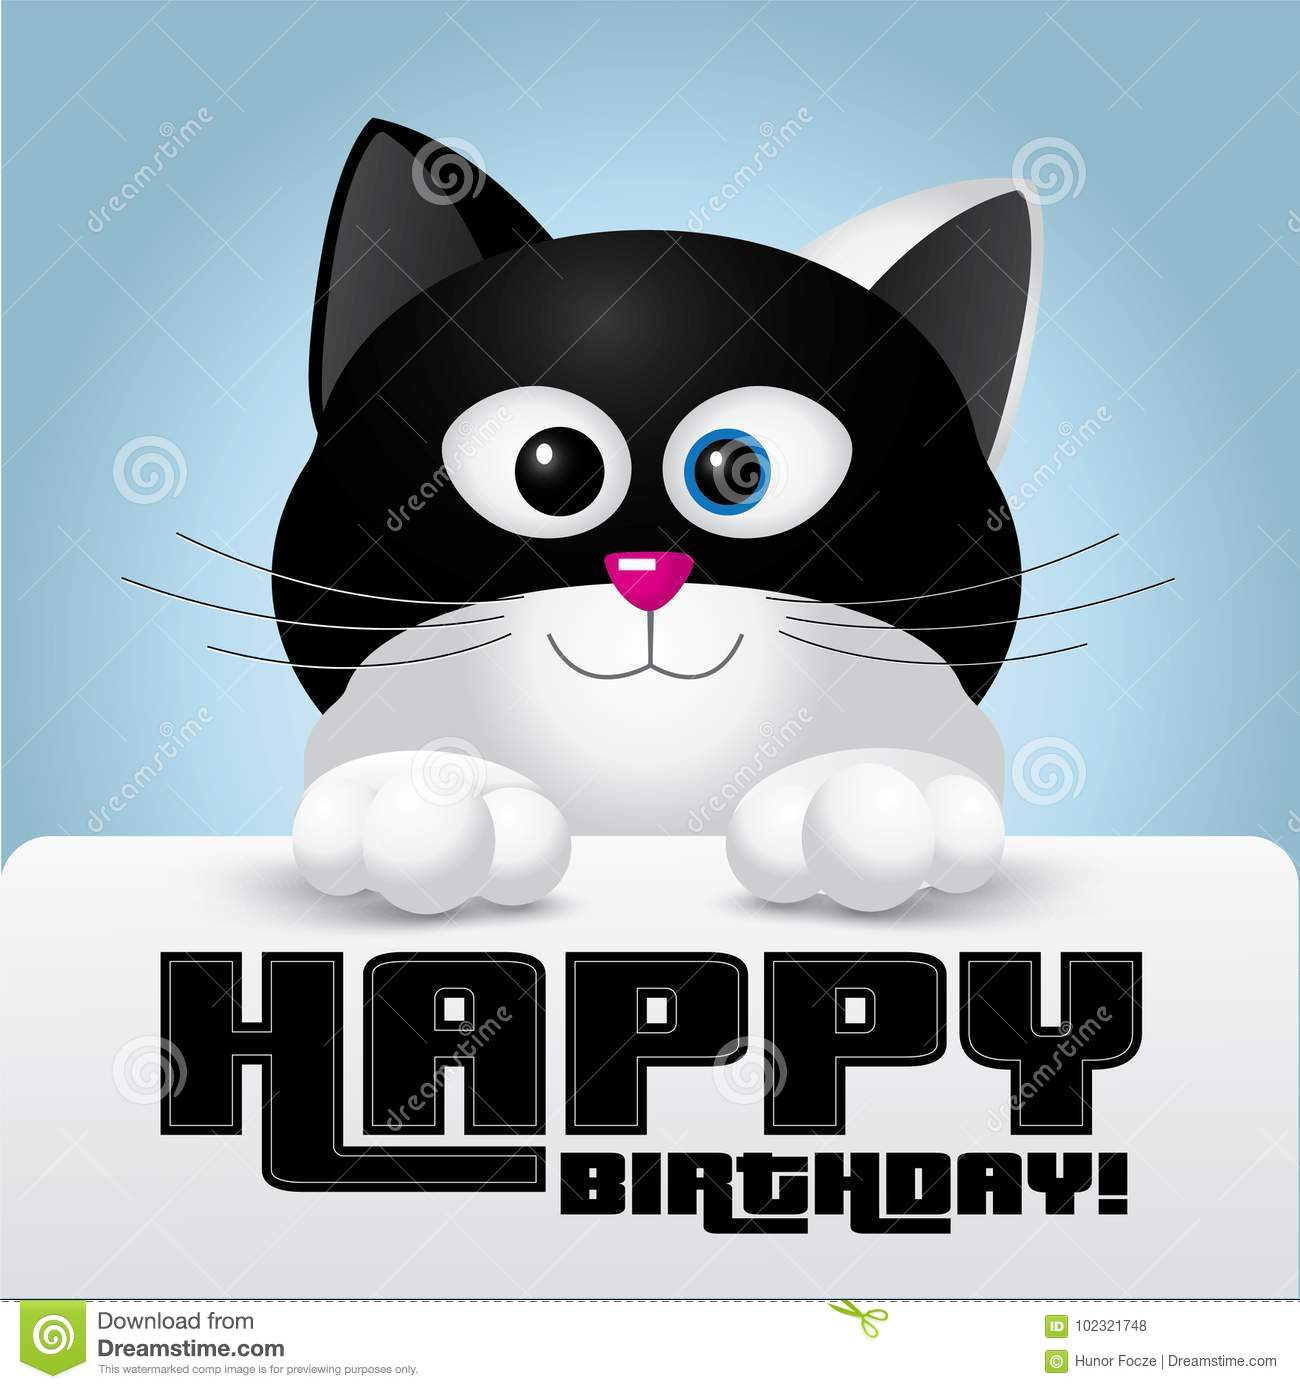 Cat with black and white colors holding a happy birthday greeting cat with black and white colors holding a happy birthday greeting card m4hsunfo